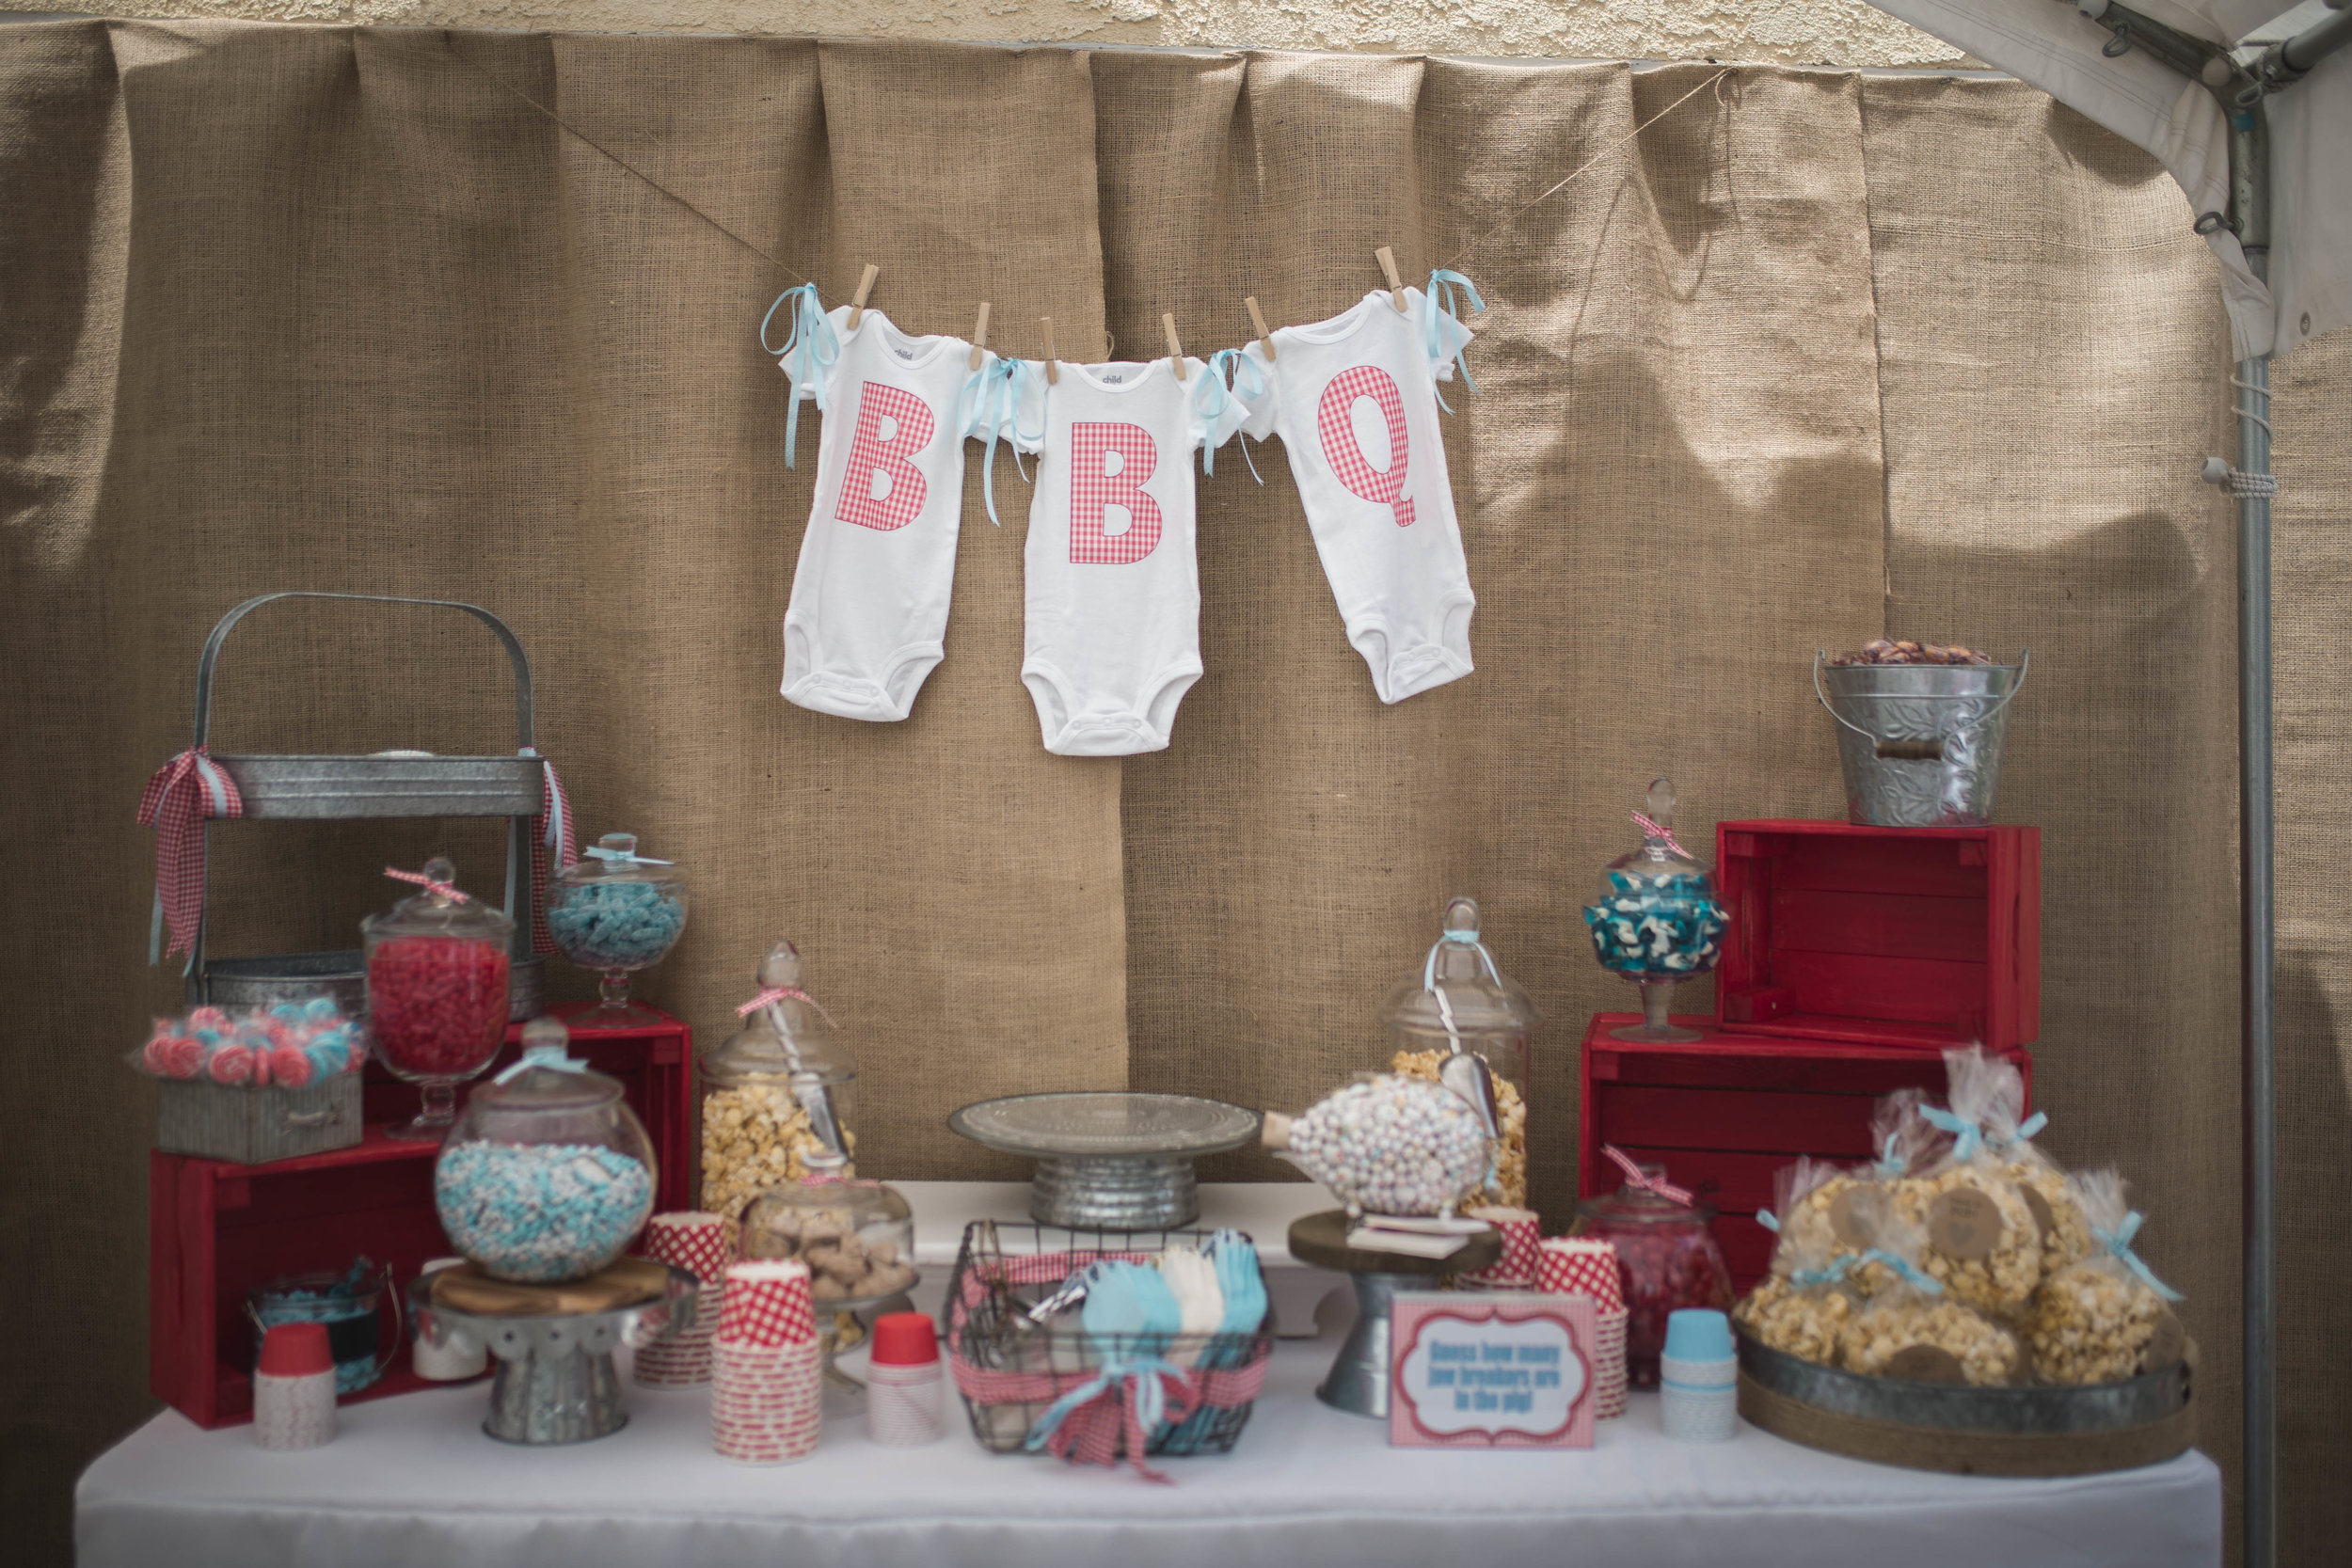 Events - Baby showers, anniversary parties, wedding showers, kid's birthdays, or cocktail parties.Any party that's a reason enough to throw is also reason enough to photograph. No event is too small or too big! Take a look below.